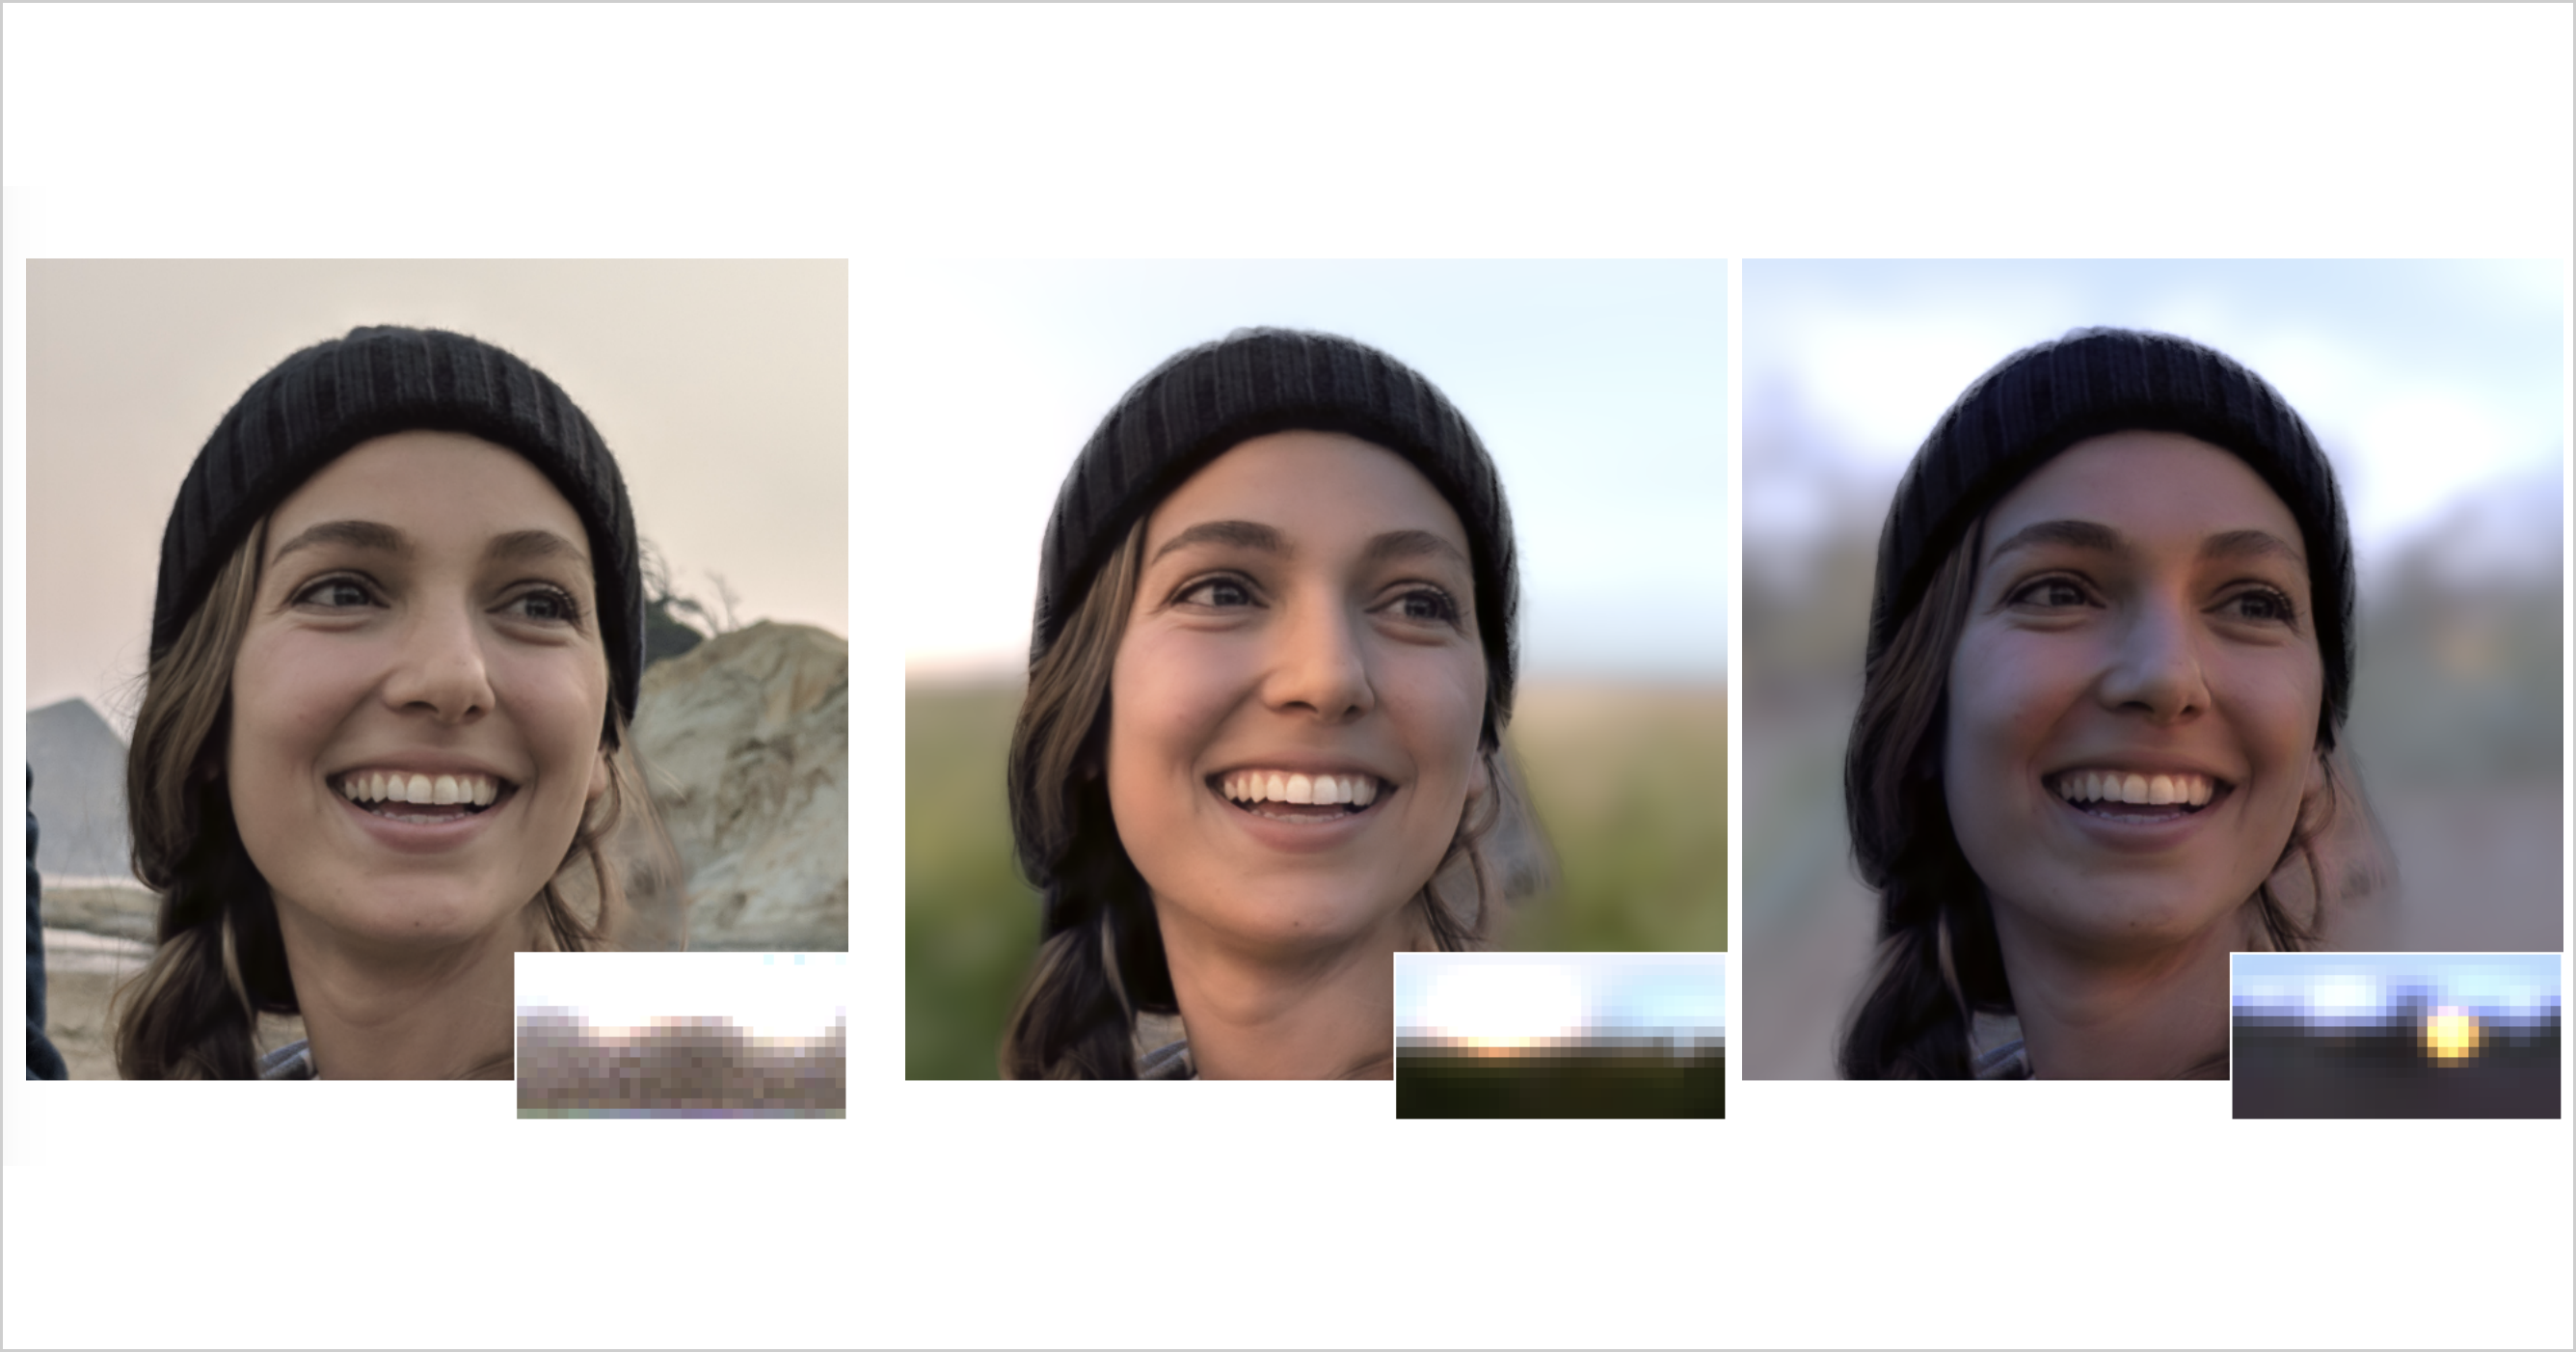 Researchers Developed an AI that Can 'Relight' Portraits After the Fact